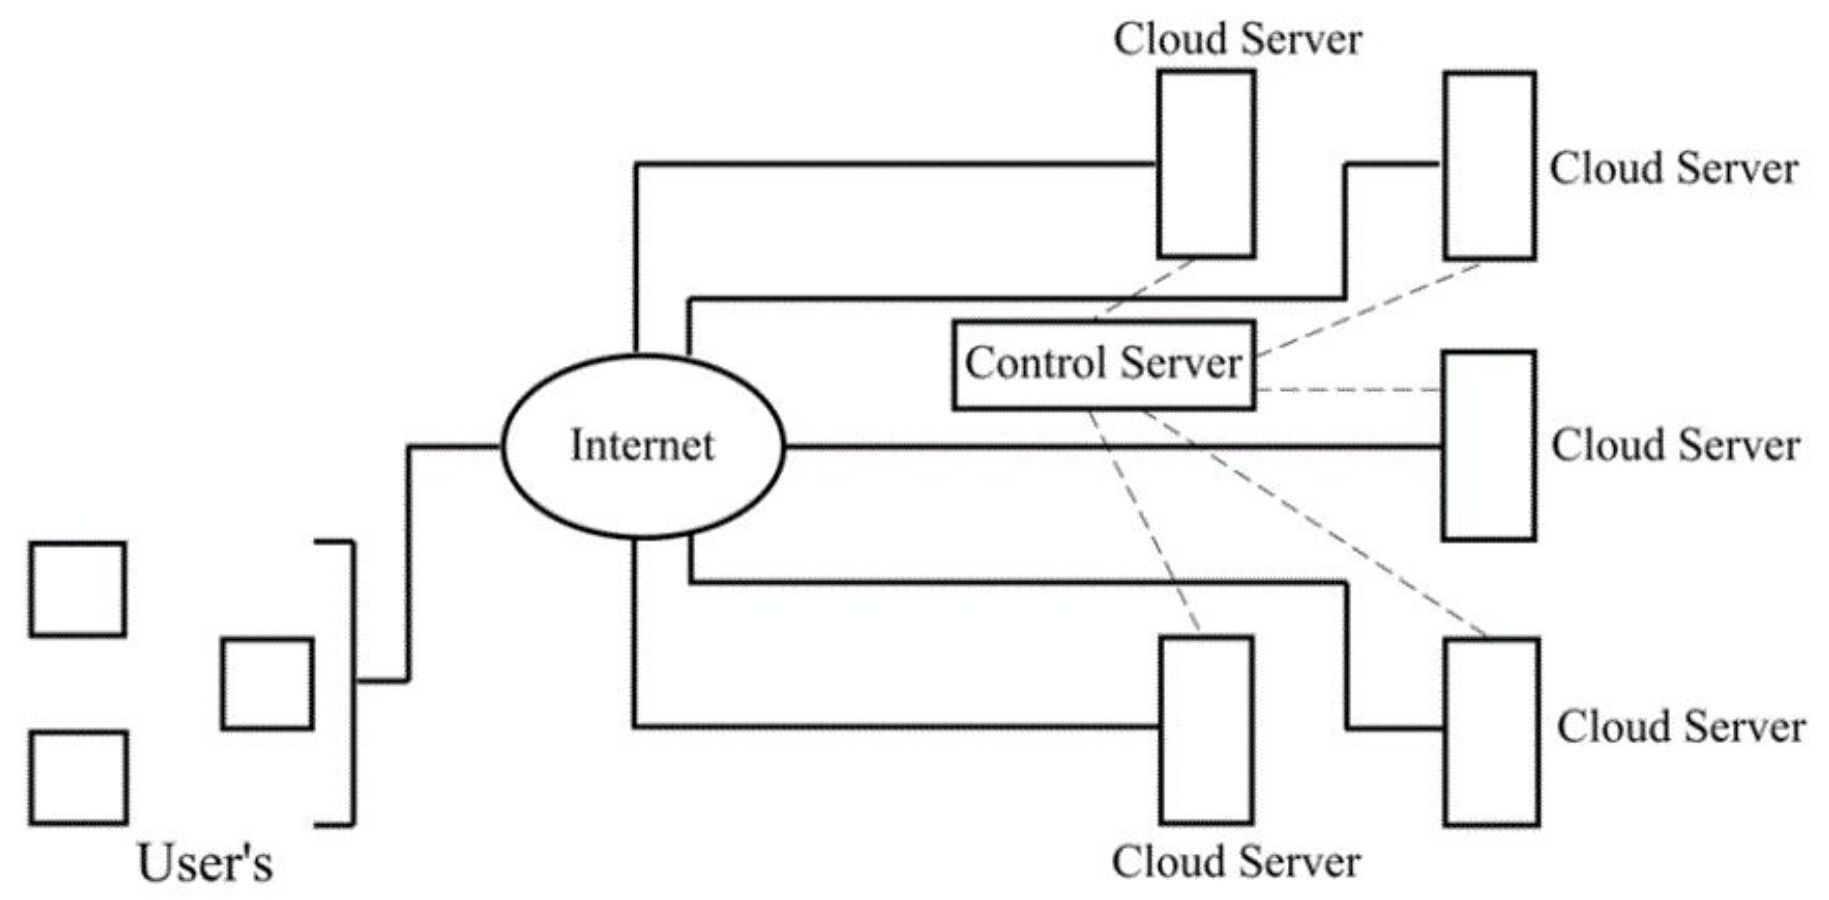 Figure 6: Cloud Network Architecture for a typical IoT authentication